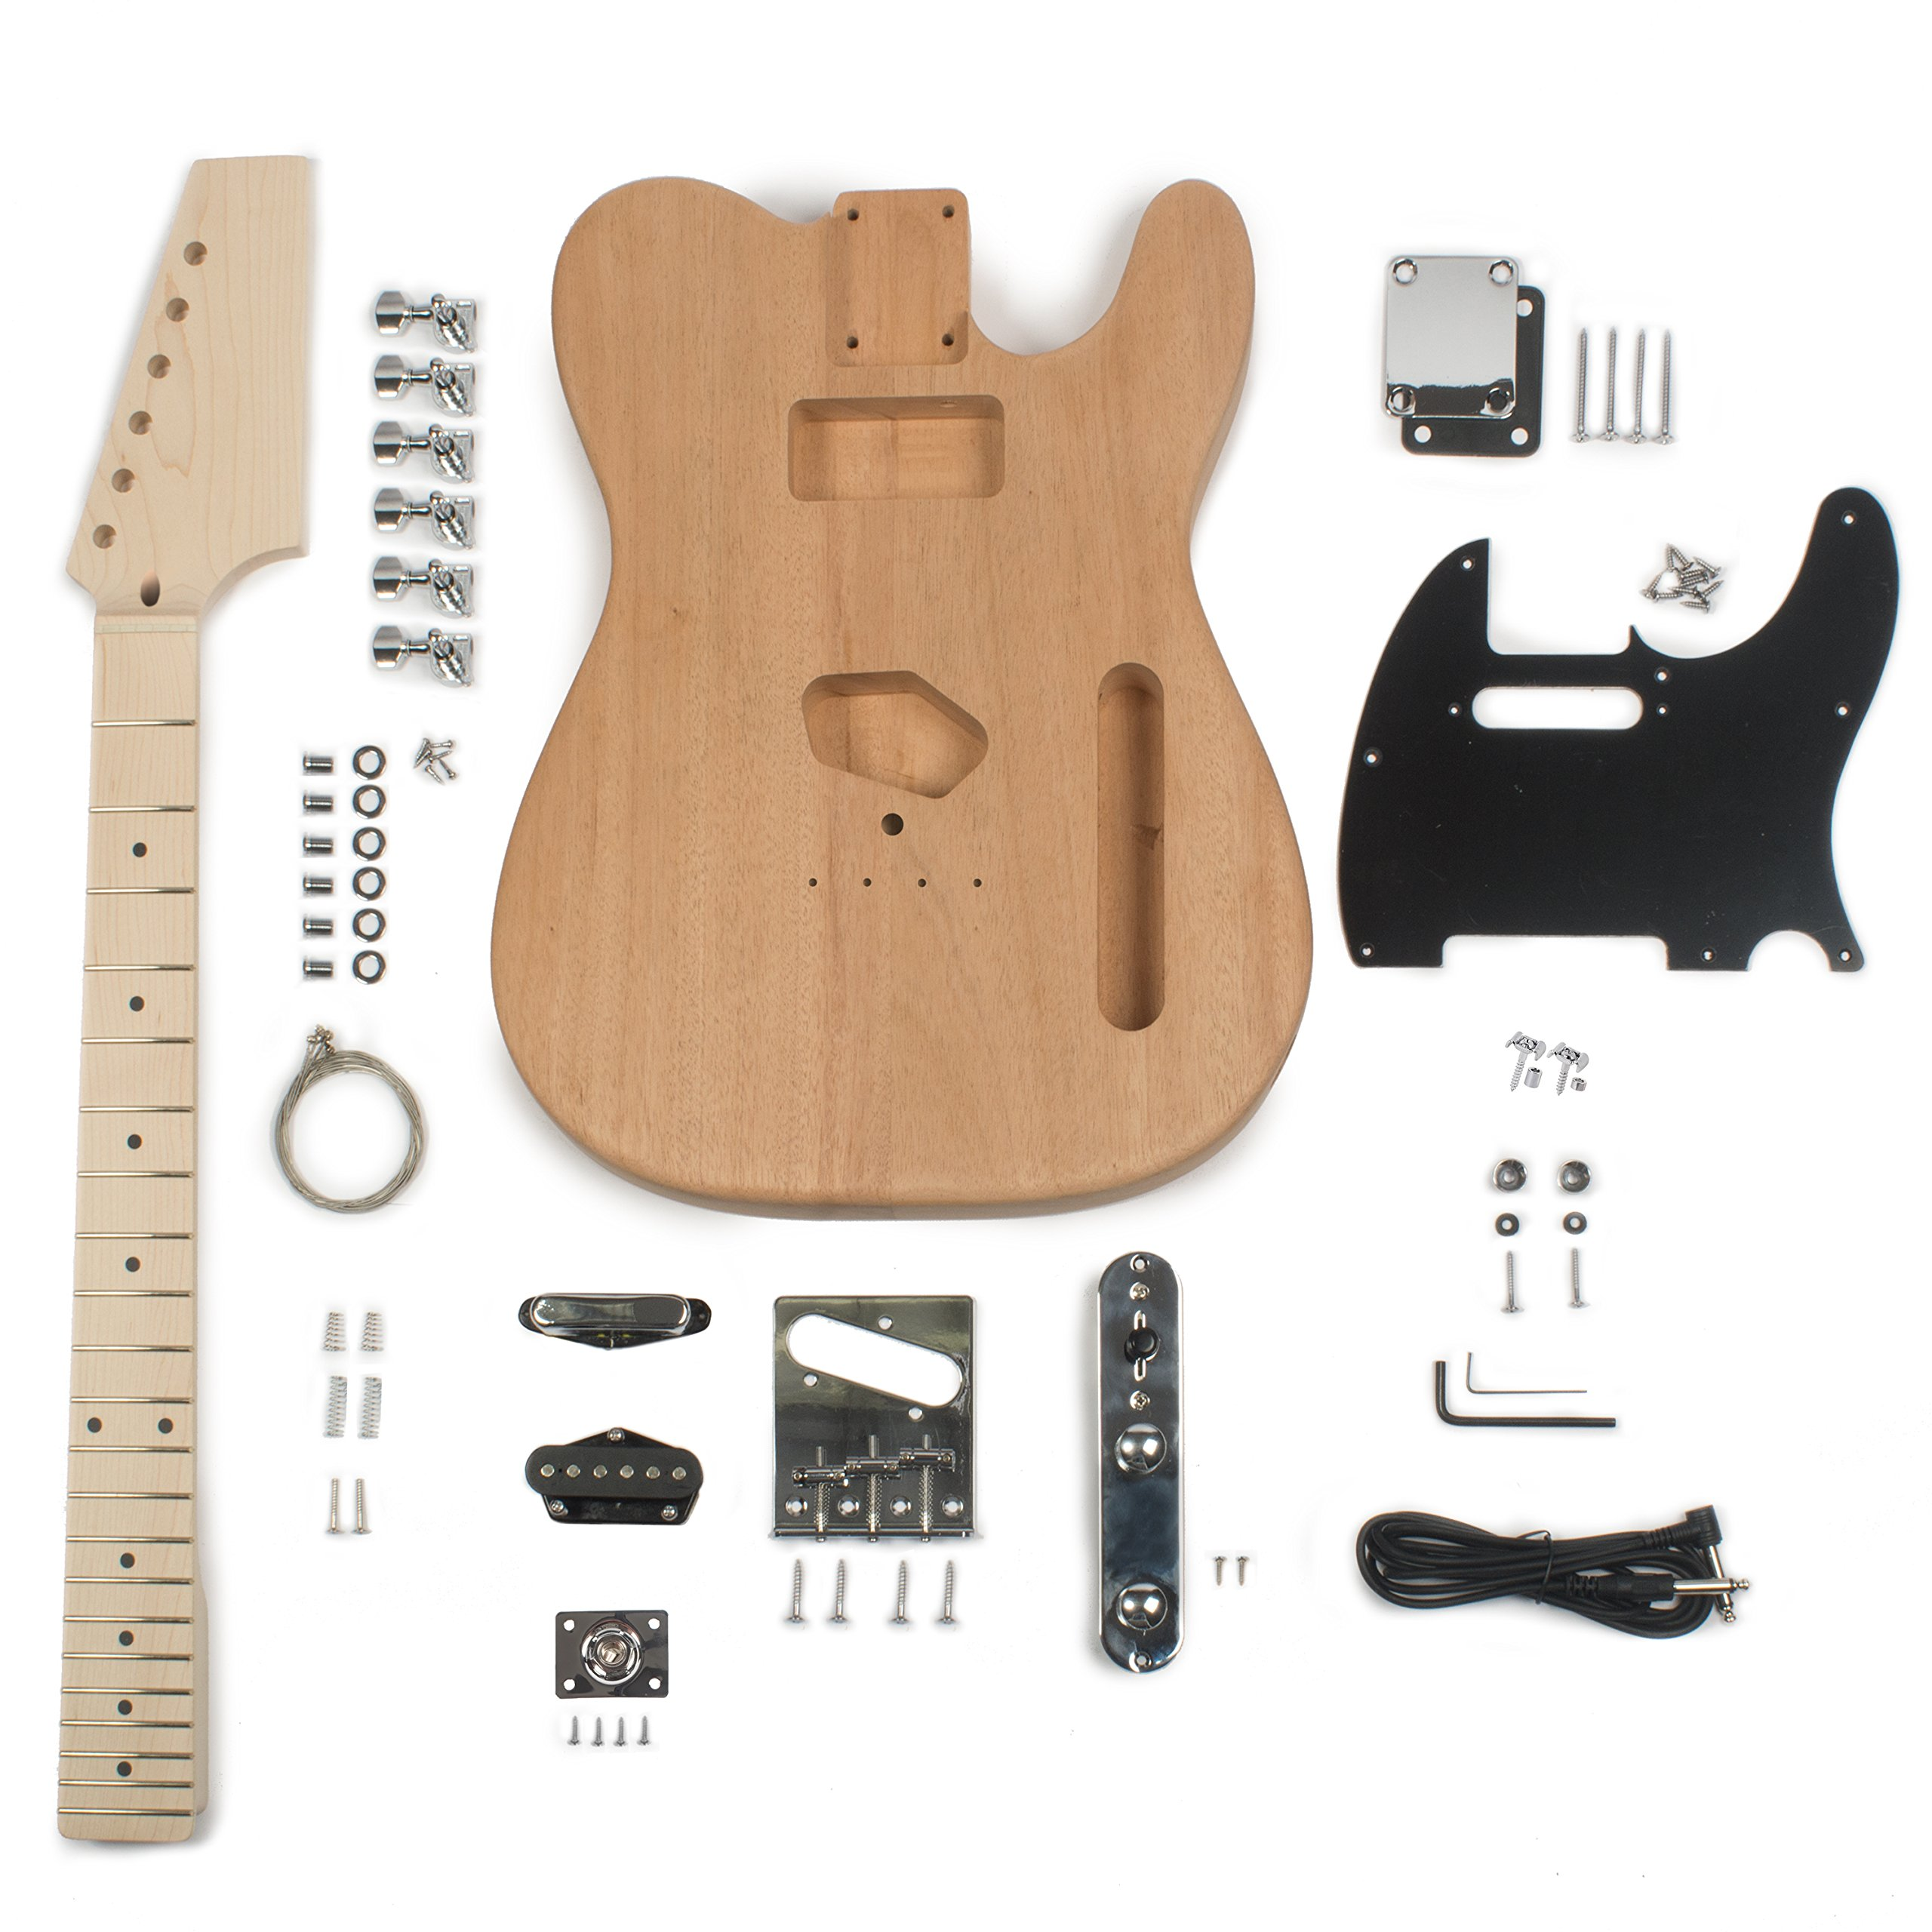 Cheap StewMac Build Your Own T-Style Electric Guitar Kit Black Friday & Cyber Monday 2019